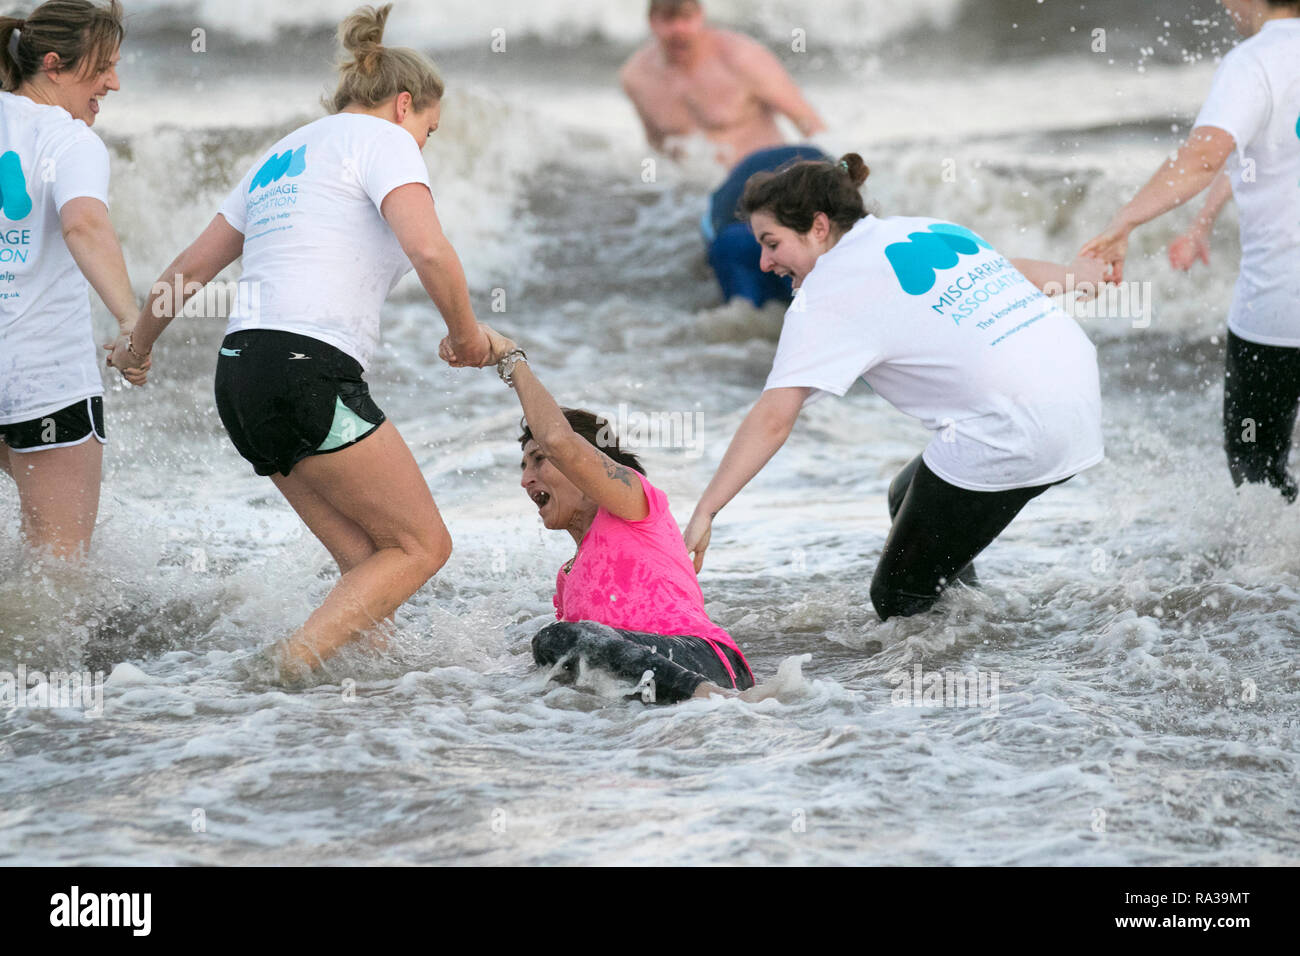 Fleetwood, Lancashire, UK. 1st Jan 2019. Pregnant mums New Year's Day Swim. Organised by Fleetwood Kite Club, the New Year's Day Dip is a fairly new tradition in Fleetwood. It started in the 1990's and is growing every year.  There are no rules other than no wetsuits allowed. There's no minimum time of how long you have to stay in the sea for – other than you have to get wet!  Credit: MediaWorldImages/AlamyLiveNews. - Stock Image